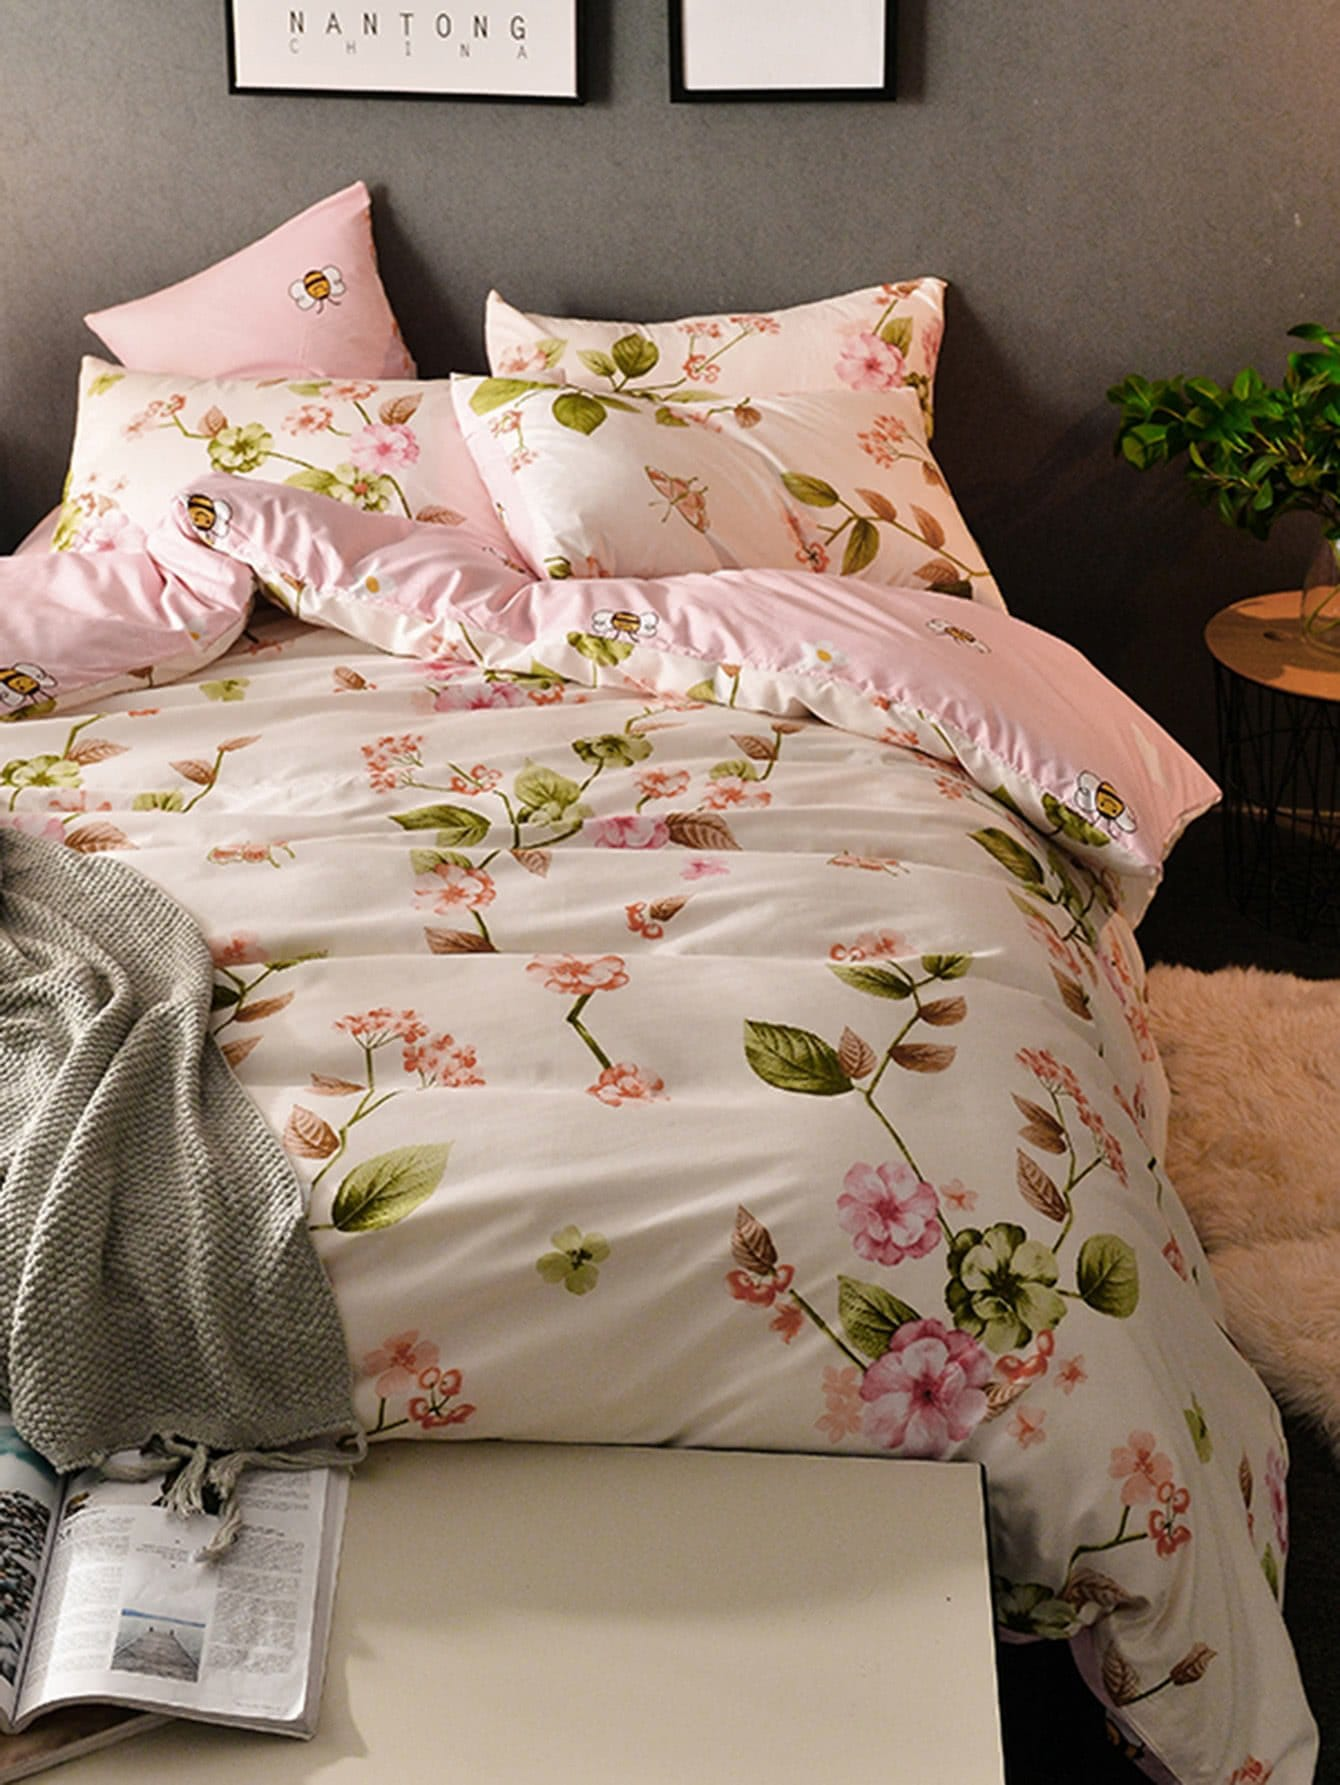 All Over Florals Print Duvet Cover Set linlin laser freckle removal machine skin mole dark spot remover for face wart tag tattoo remaval pen salon home beauty care